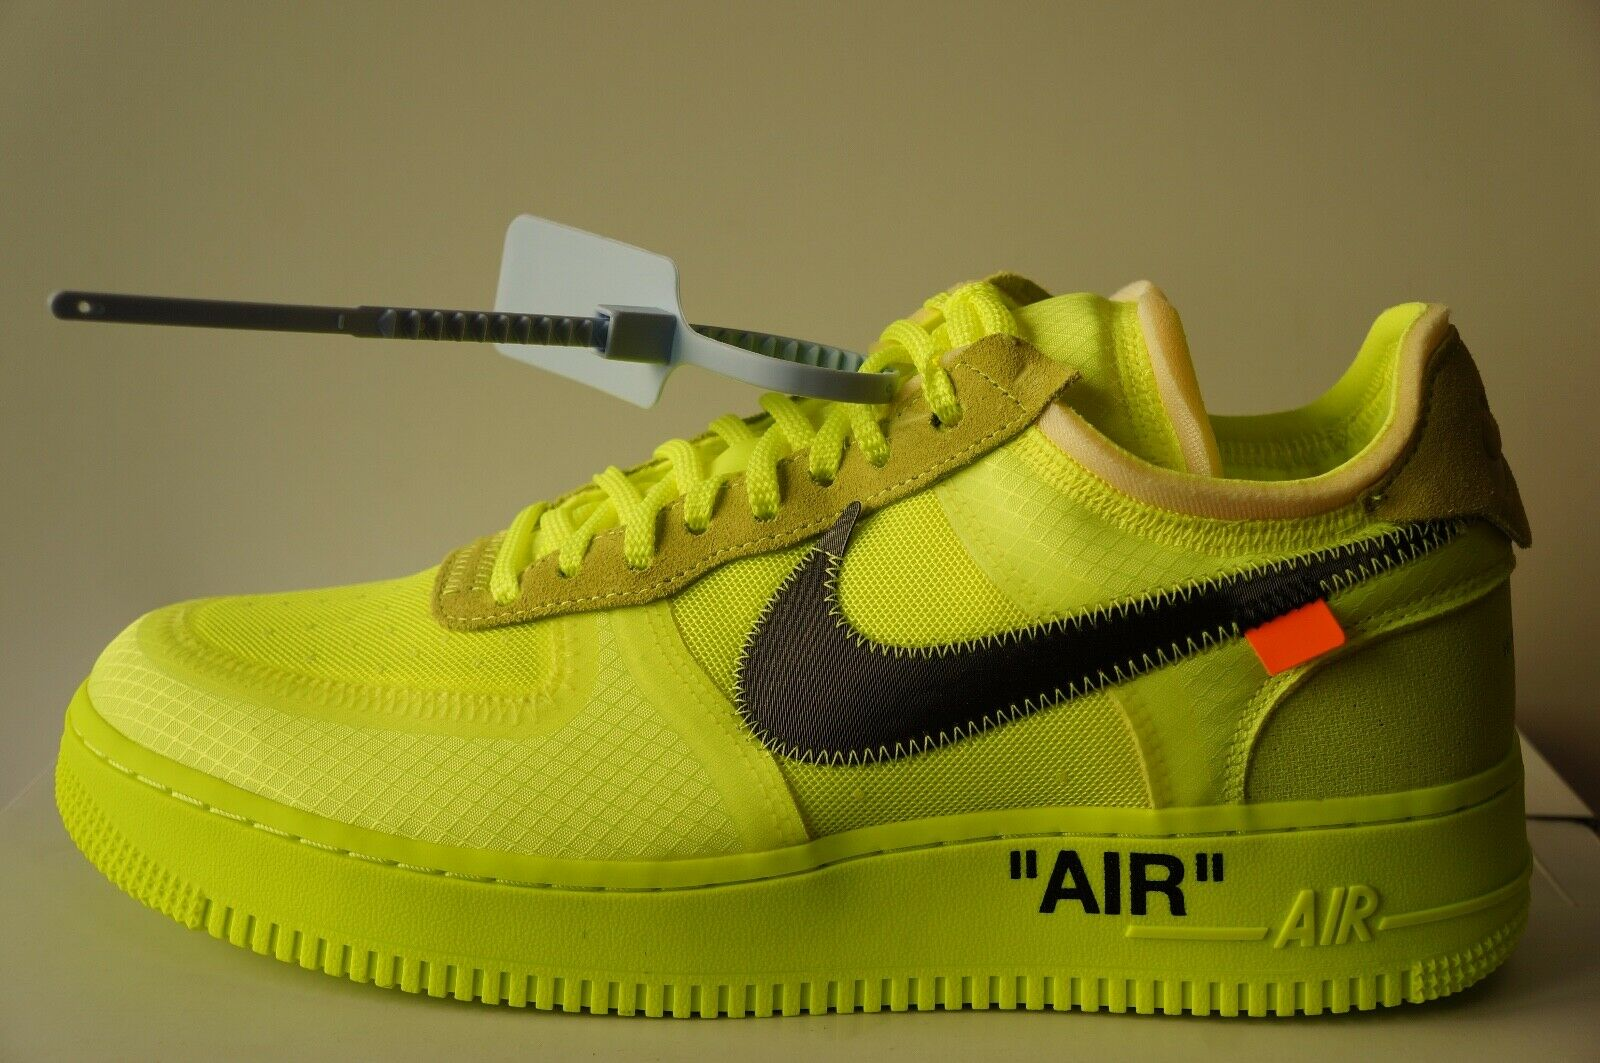 Nike Air Force 1 Off White Volt AO4606700 (Größe 37-47)